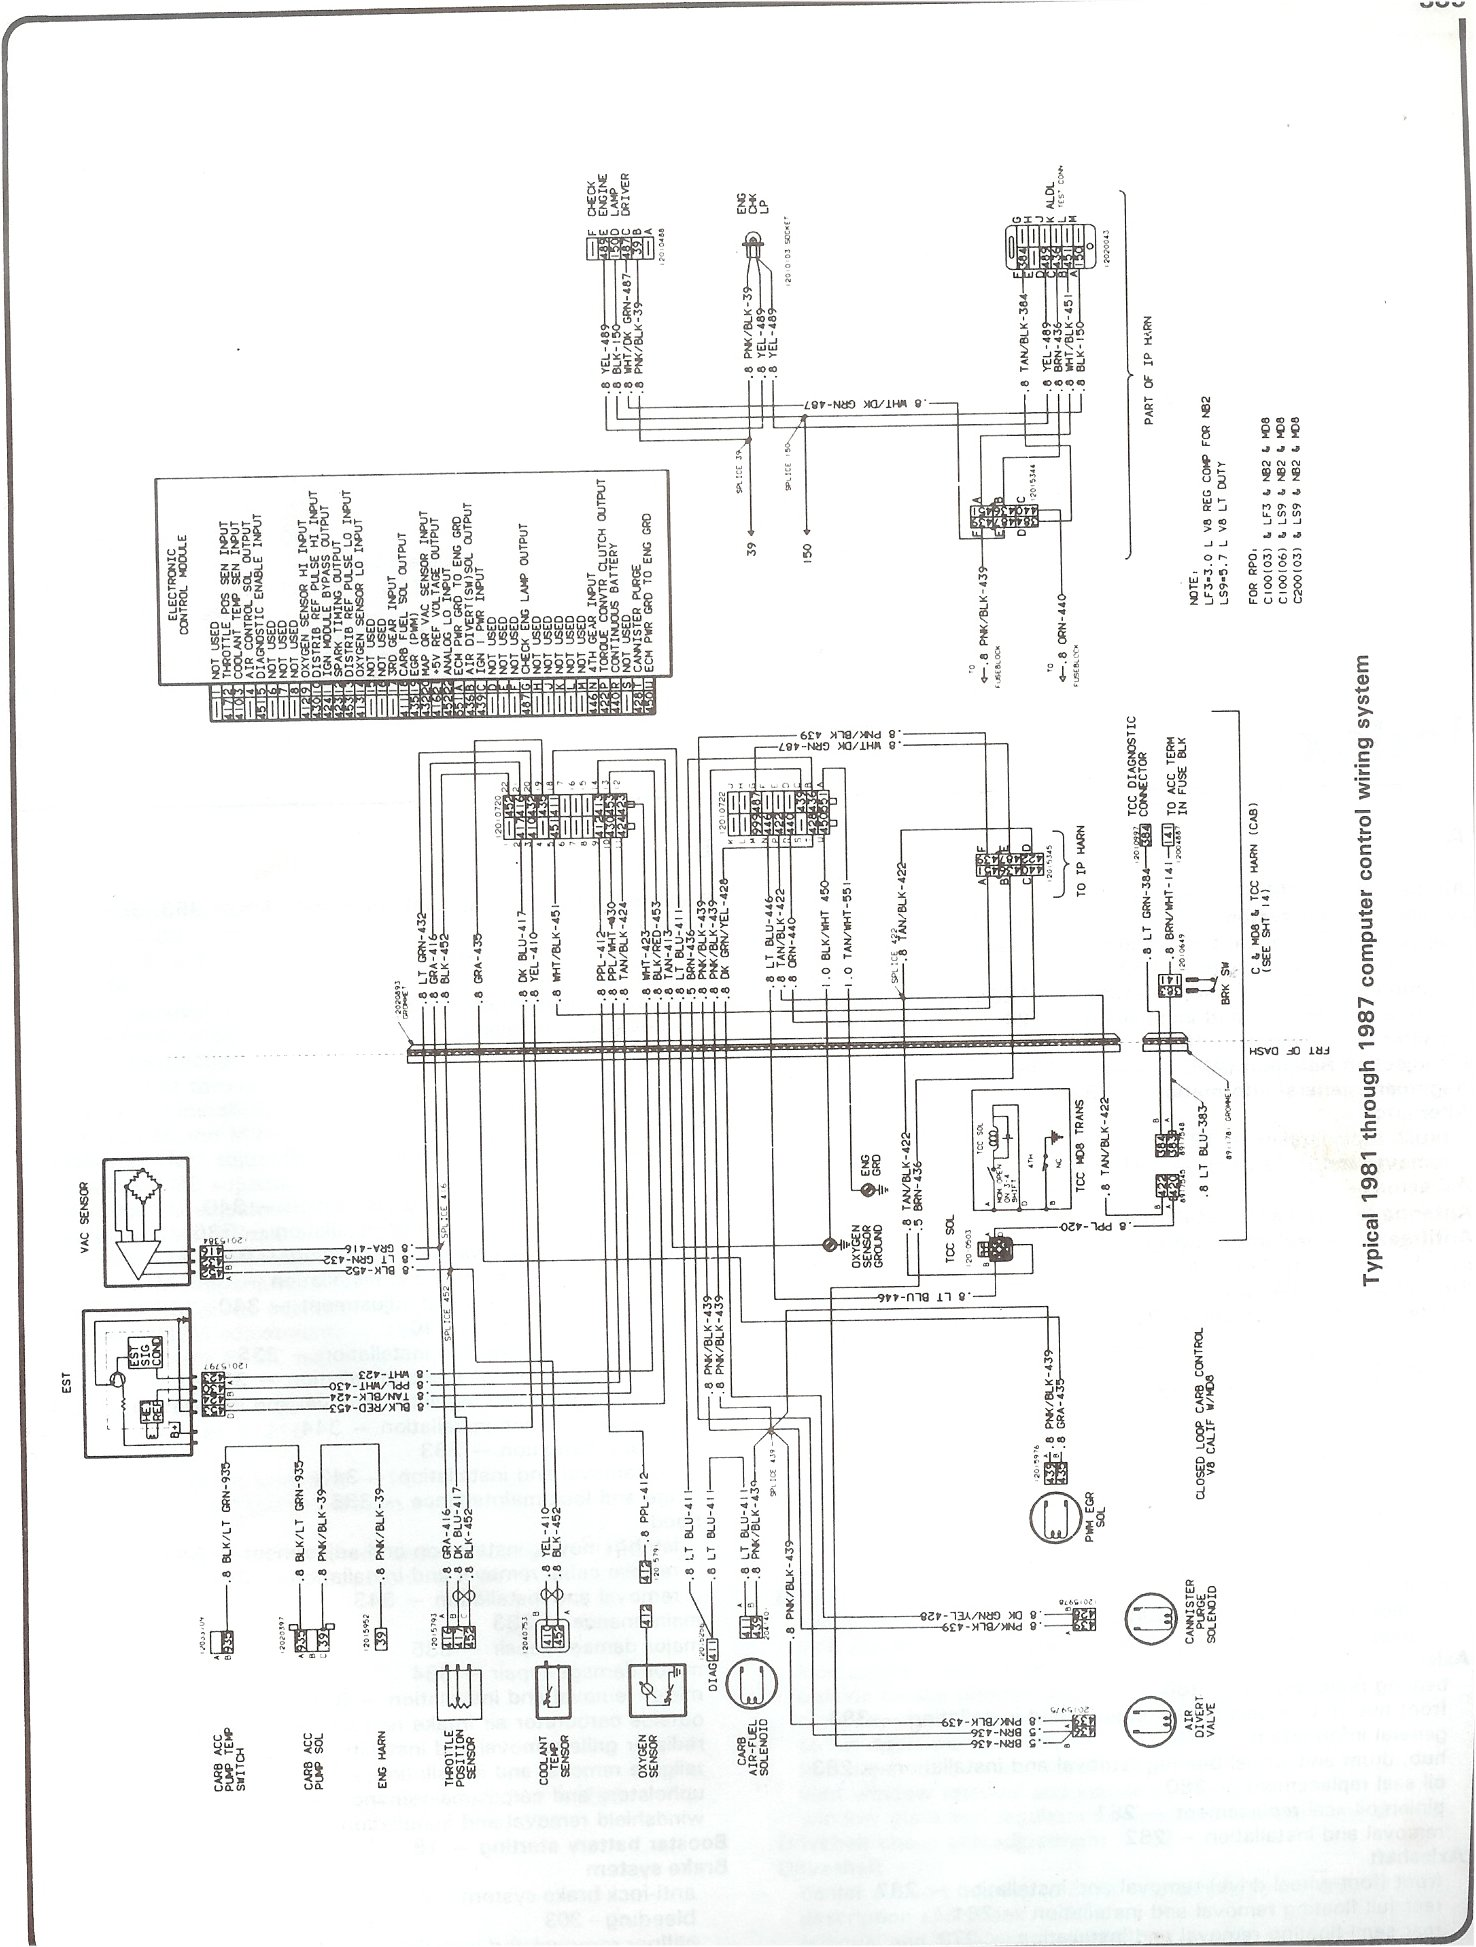 81 87_computer_control_wiring complete 73 87 wiring diagrams 1988 GMC Sierra 1500 at virtualis.co